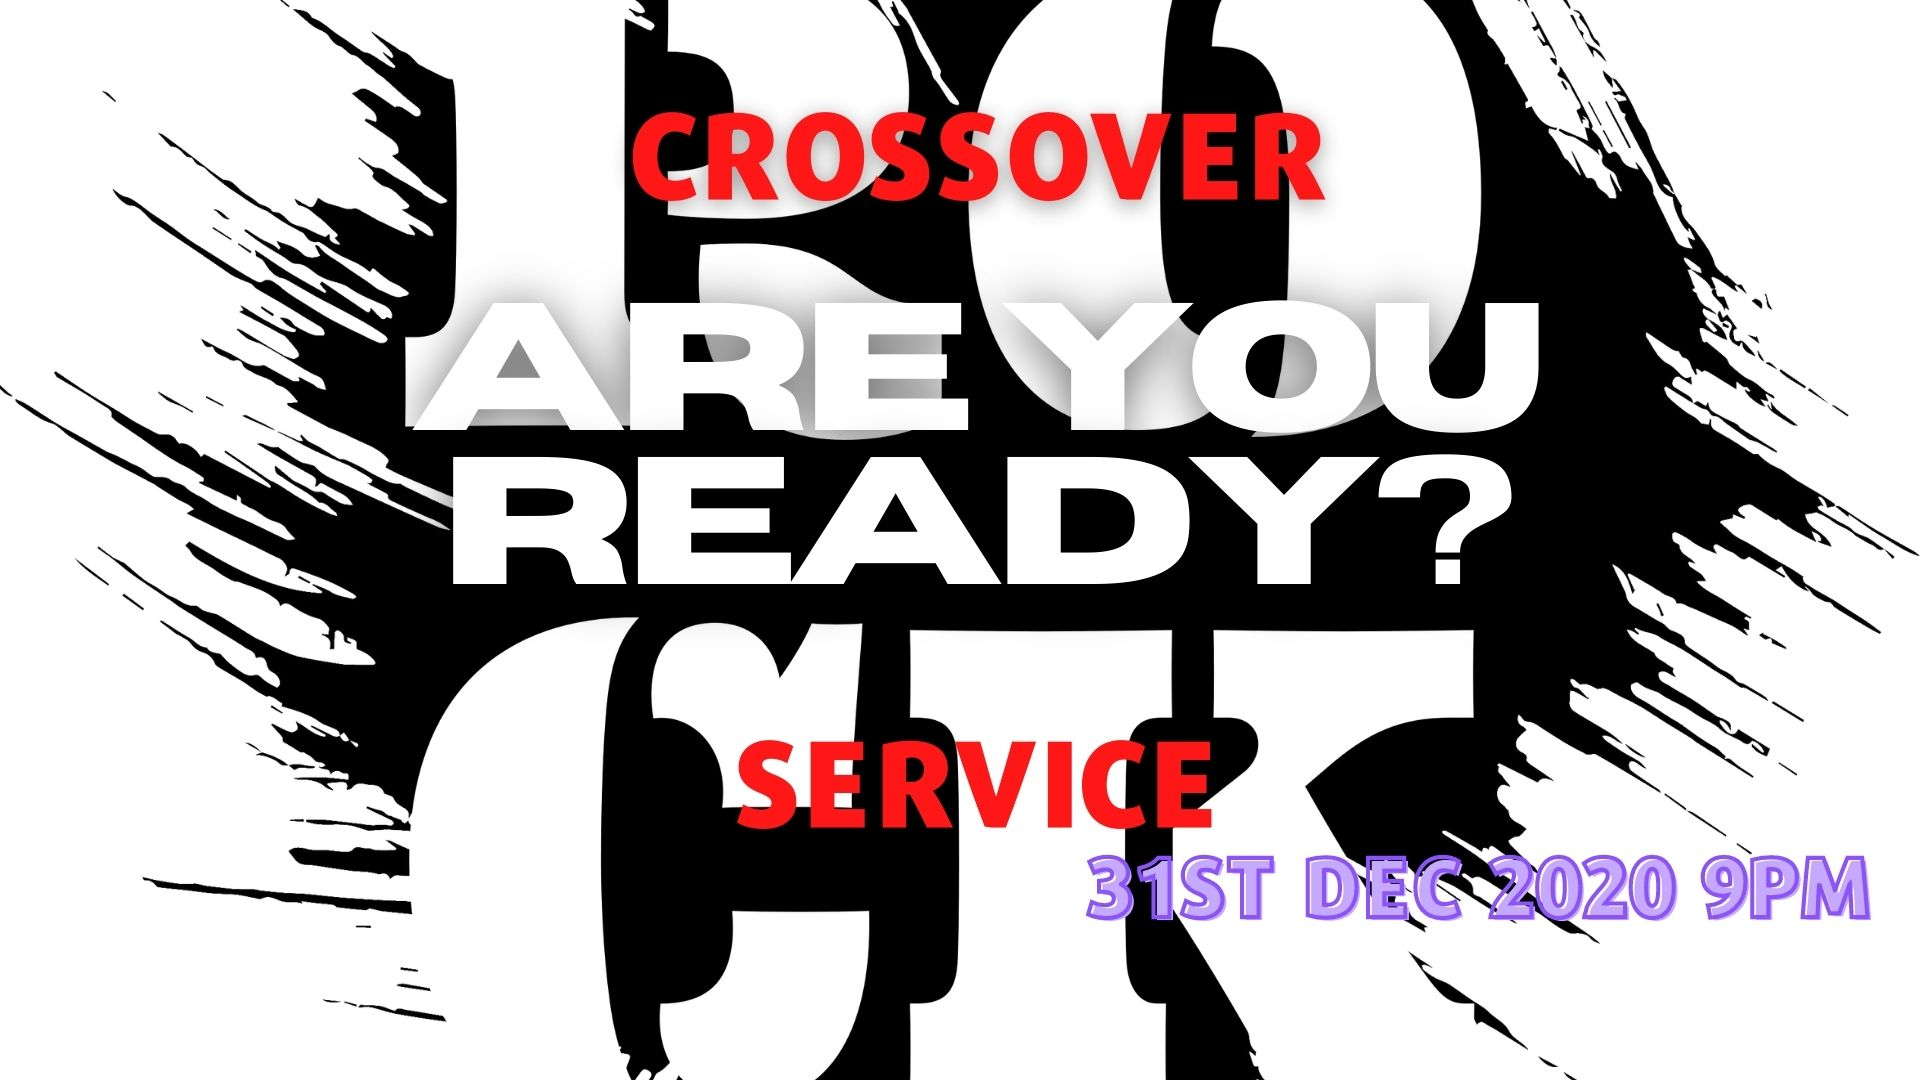 Crossover Service - 9pm Thursday 31st December 2020